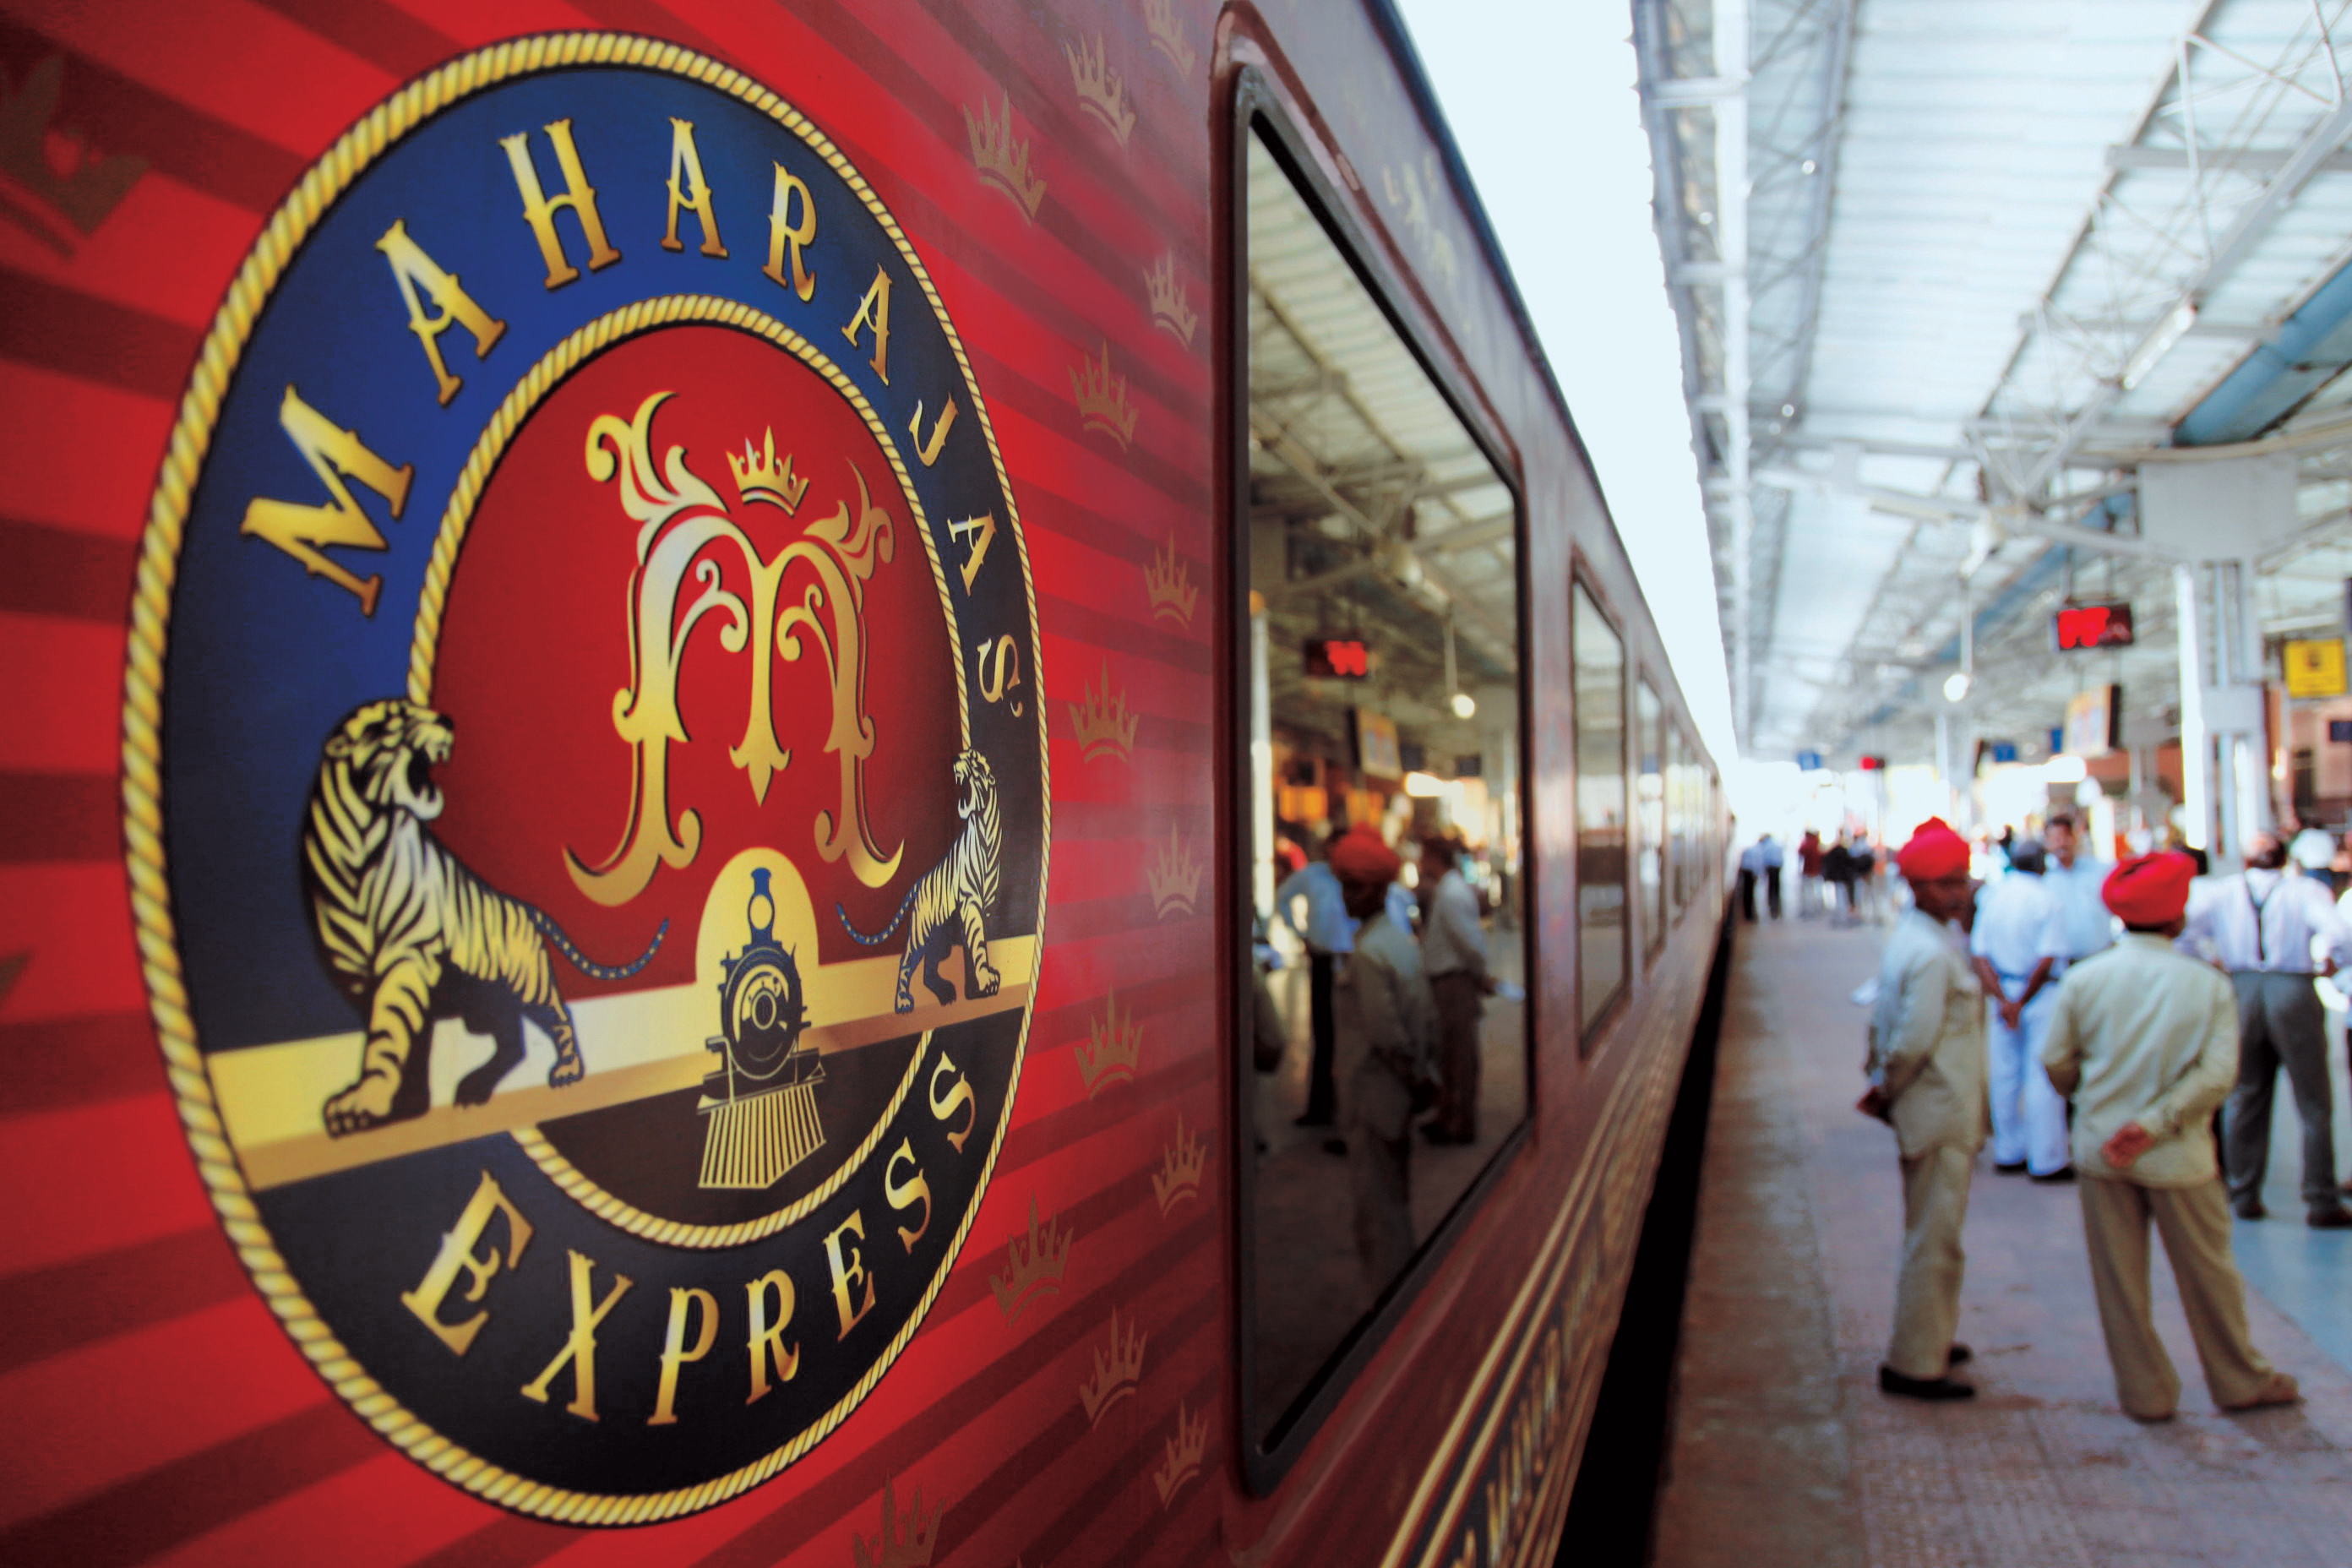 Maharajas Express 10 Things About The Indian Delicacy